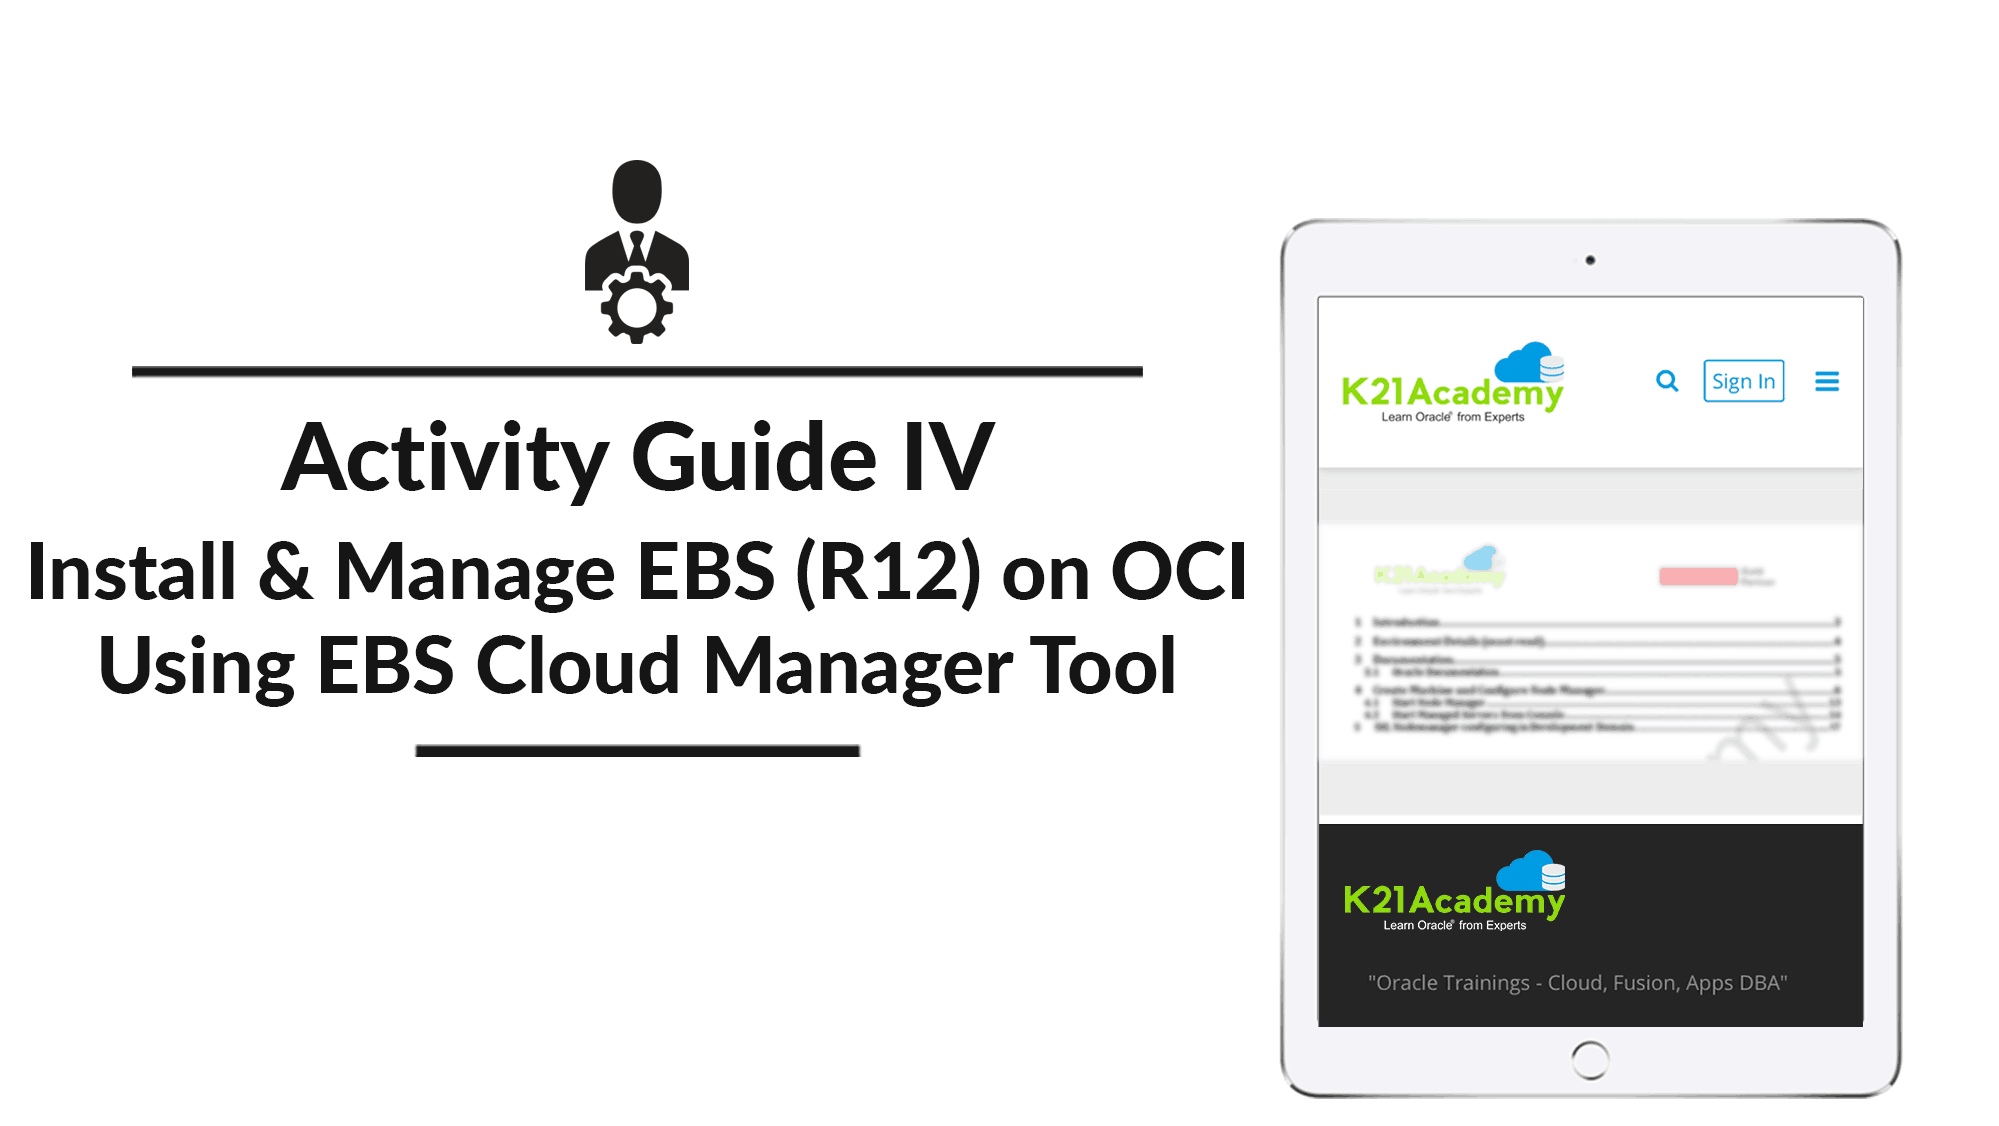 Activity guide 4 on EBS cloud manager